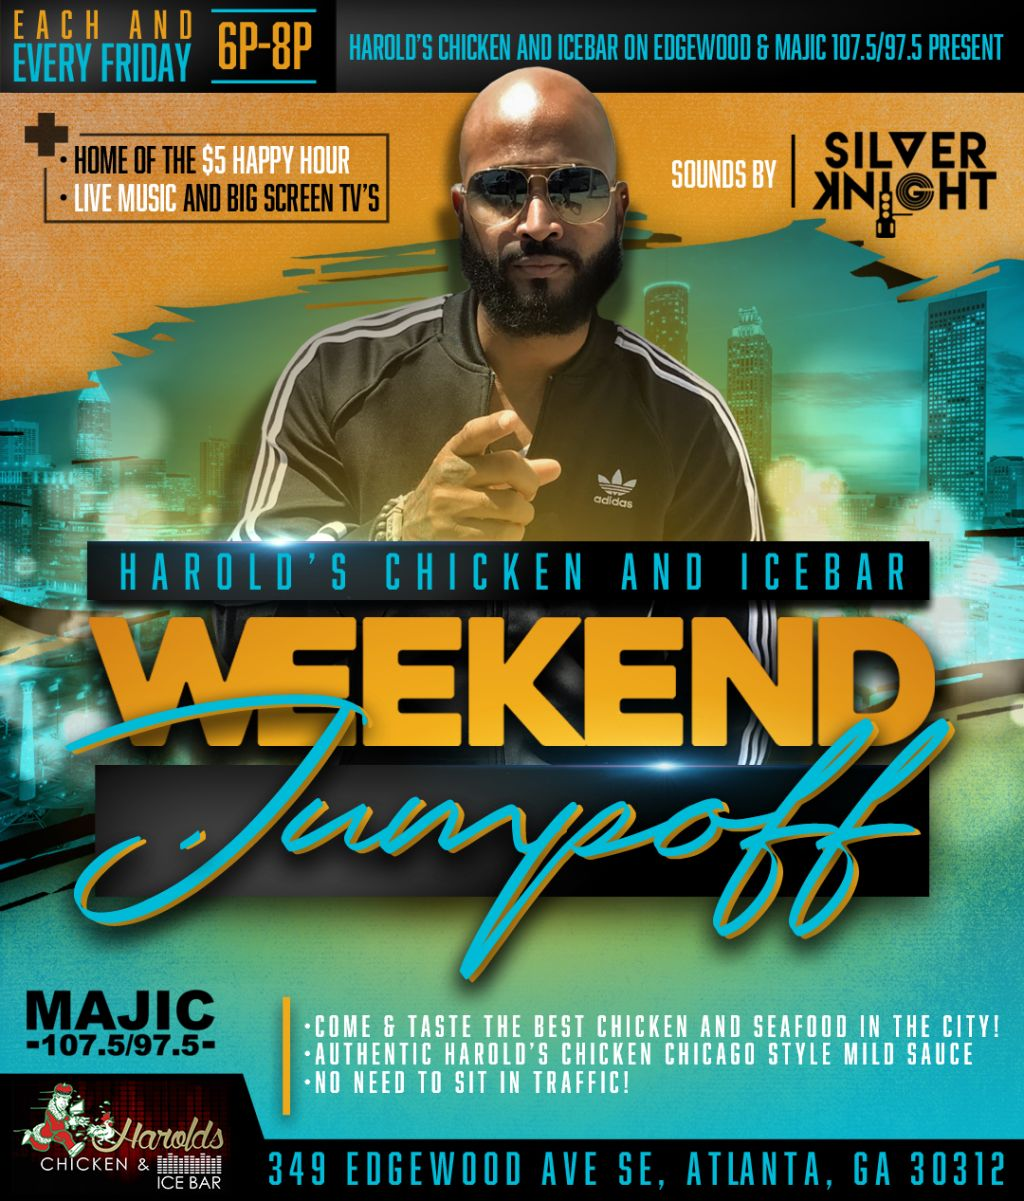 Harolds' Chicken & Icebar: Weekend Jumpoff With Silver Knight